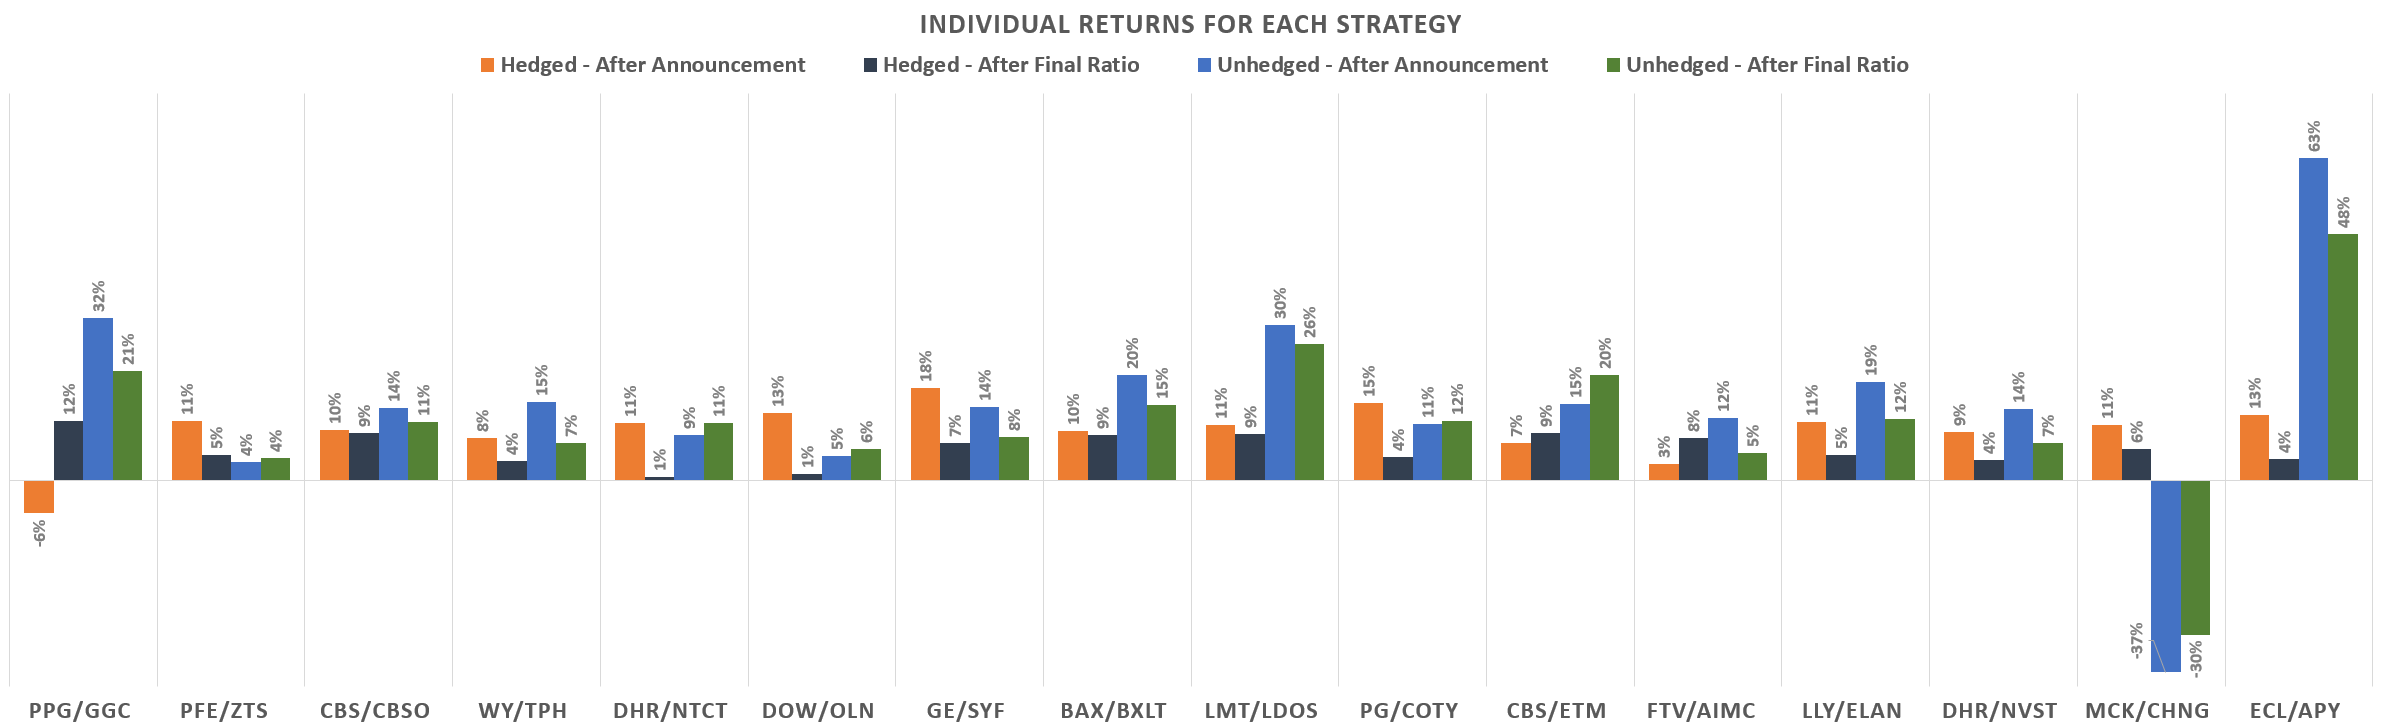 Individual returns of diff strats